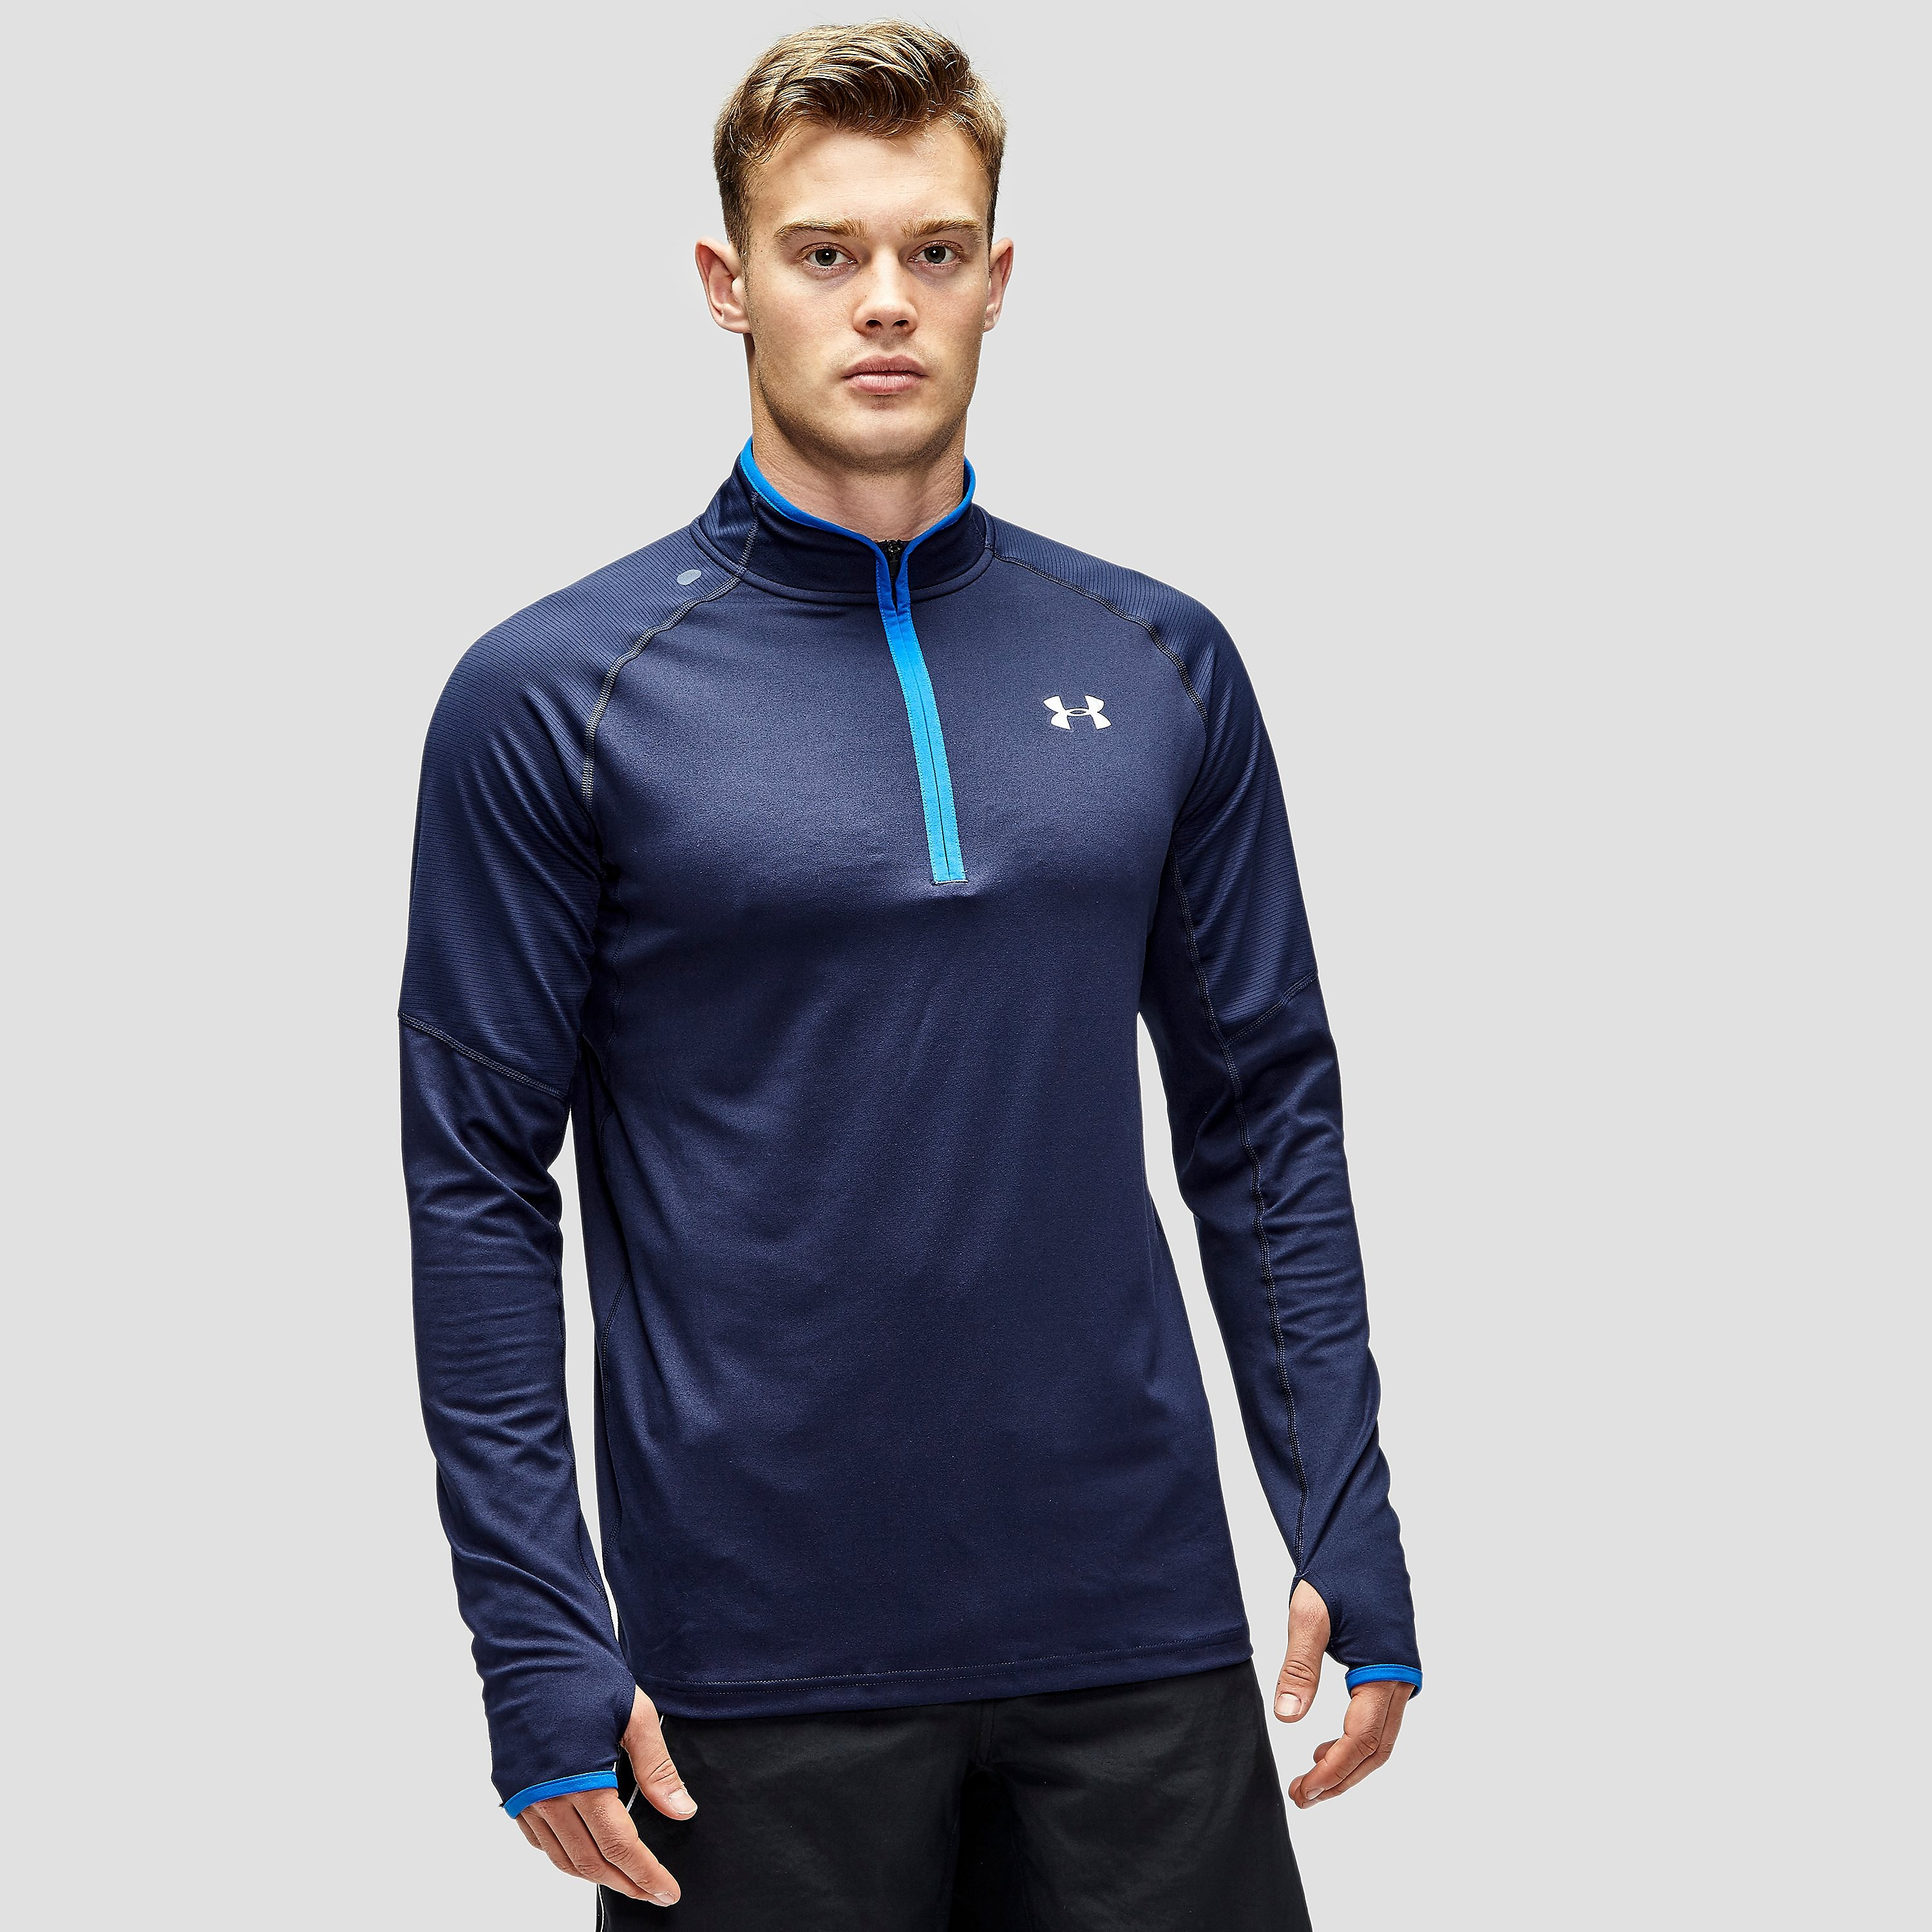 Under Armour No Breaks Run 1/4 Zip Top